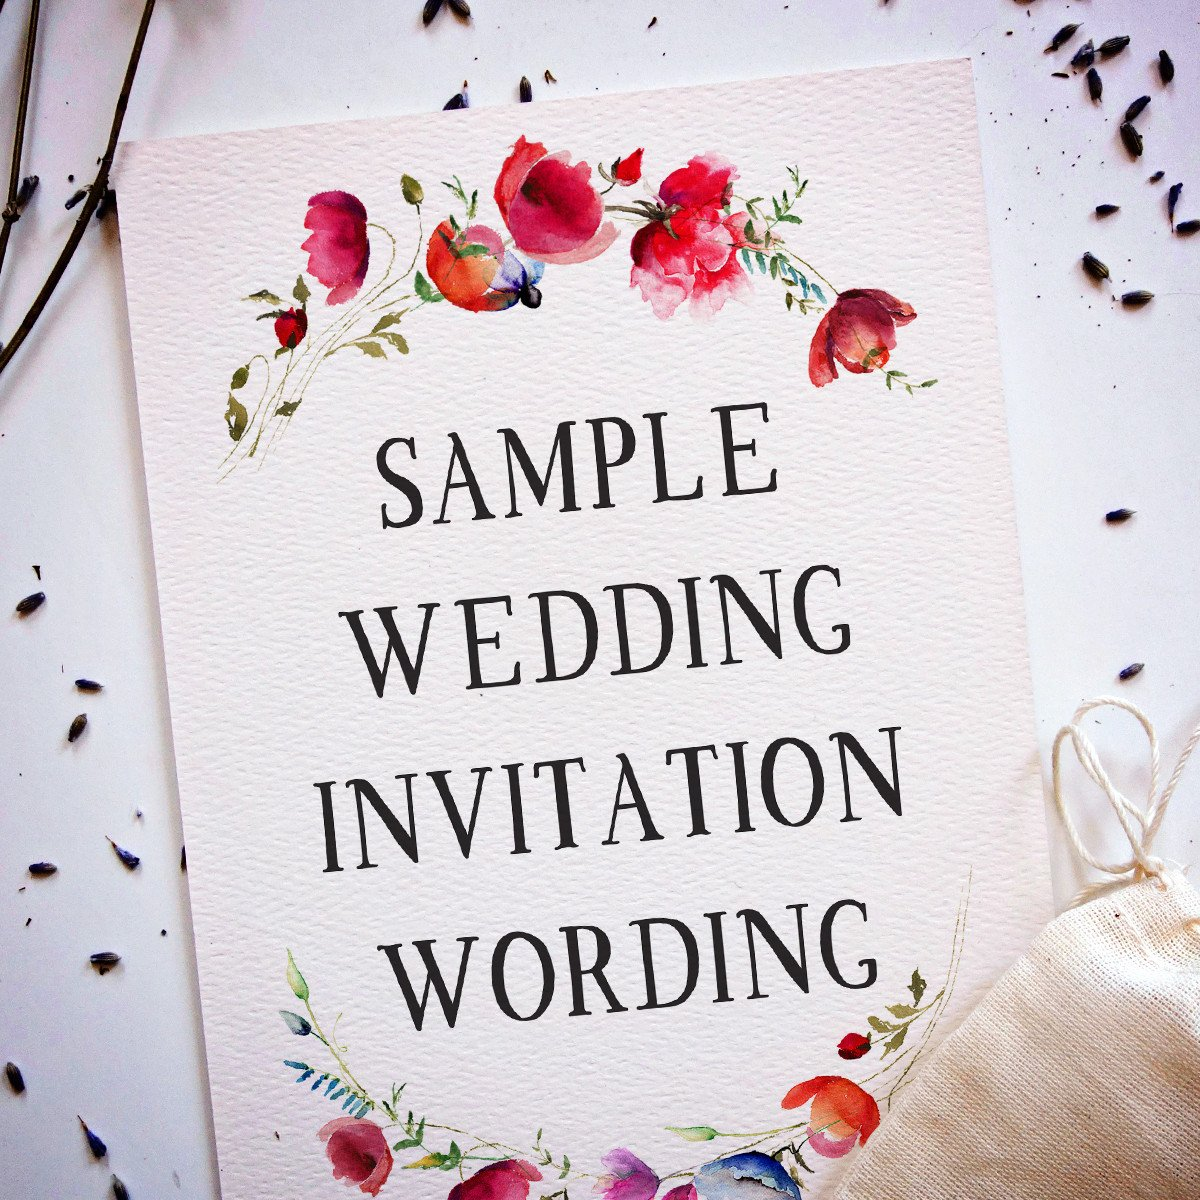 Sample Wedding Invitations Templates Wedding Invitation Wording Samples From Traditional to